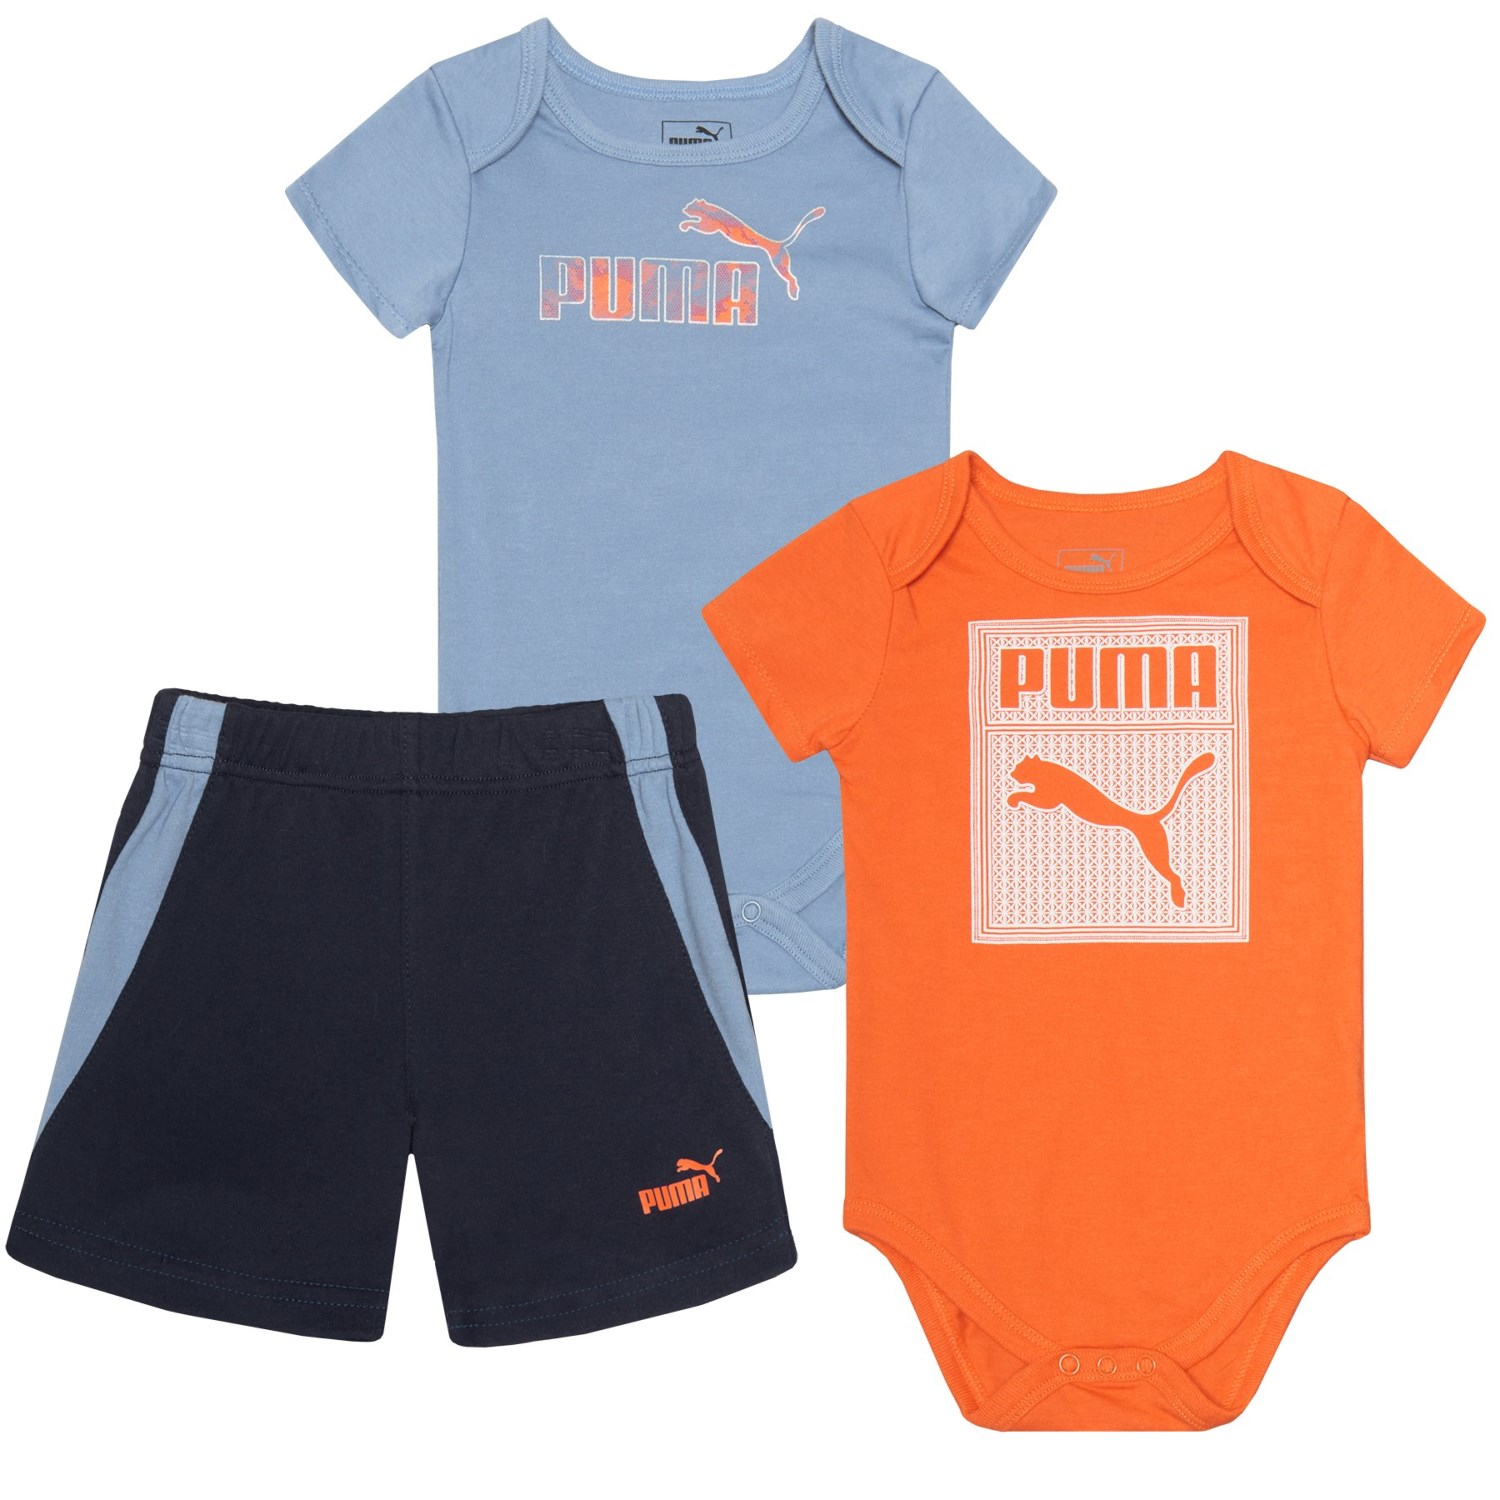 Puma Cat Baby Bodysuits and Shorts Set For Infant Boys Save